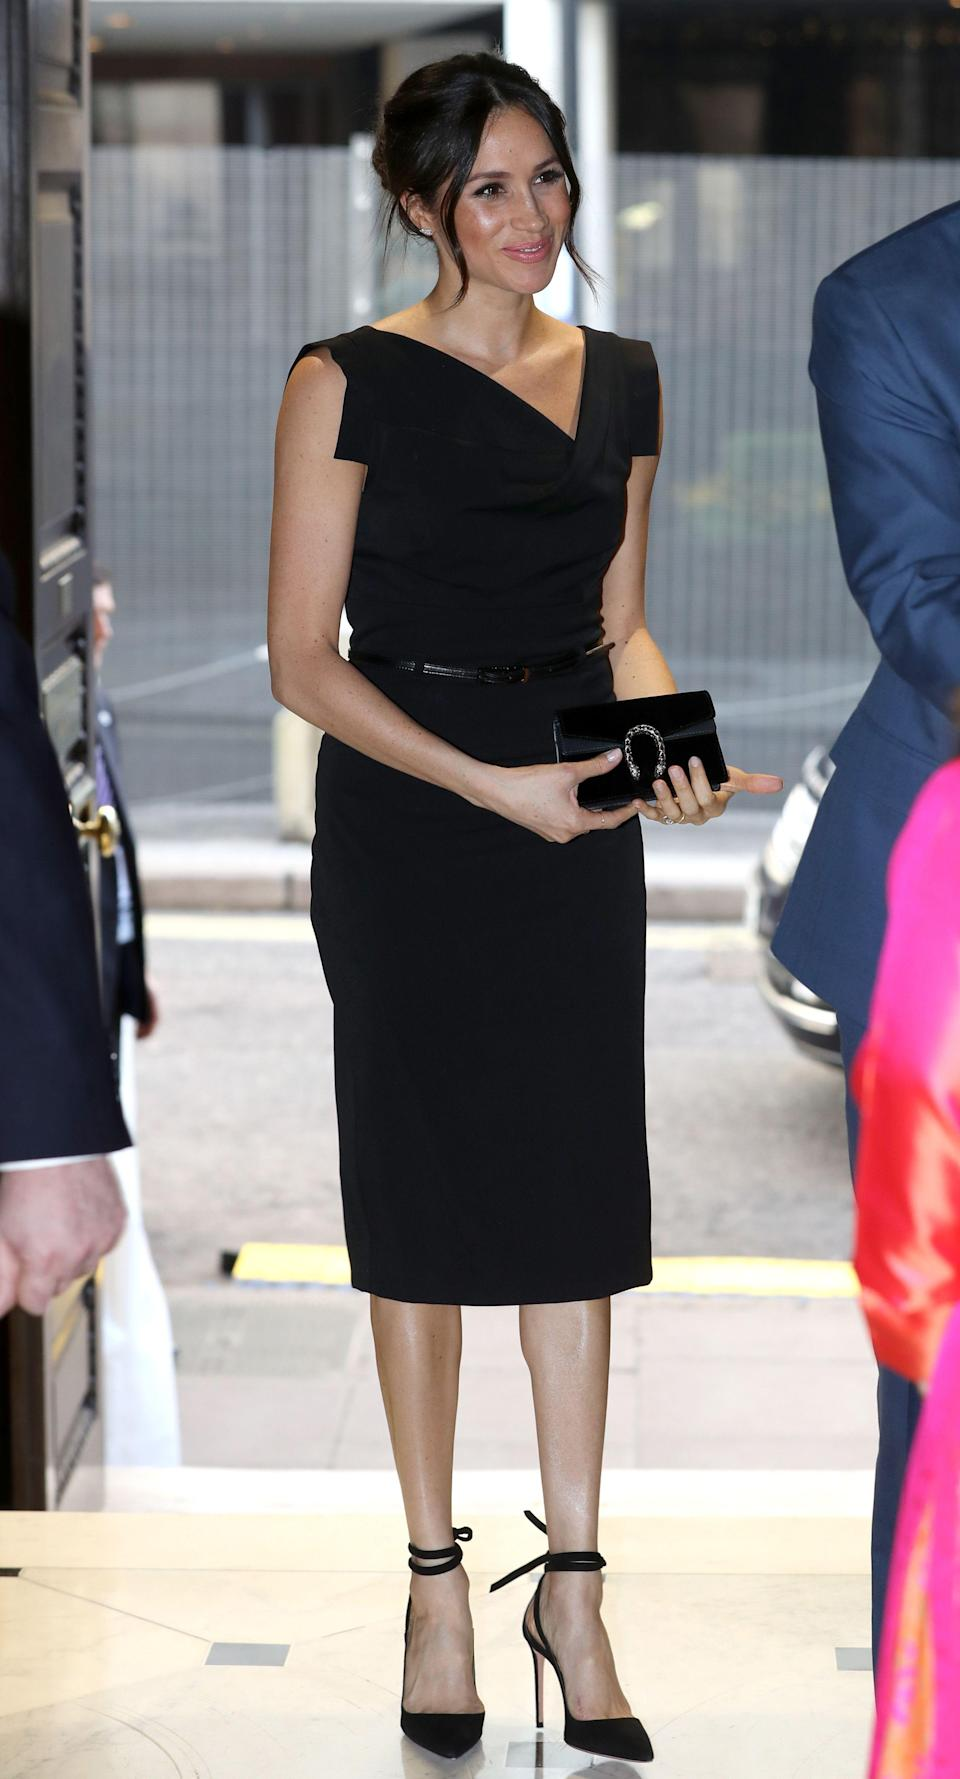 <p>Meghan Markle attended a Women's Empowerment reception wearing Black Halo's Jackie O Belted Dress, named after the iconic former first lady of the United States. </p>